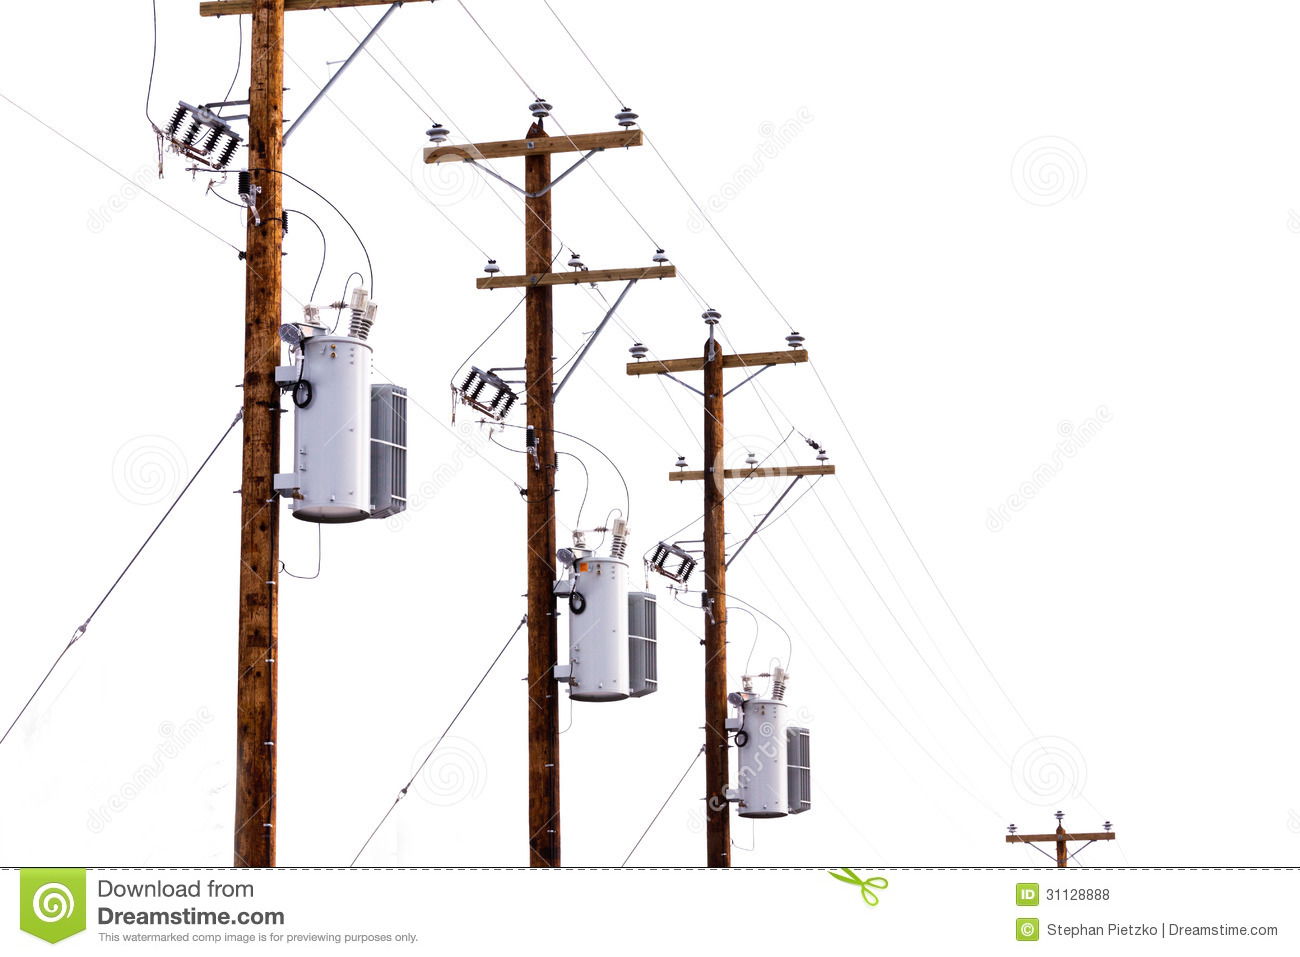 Types Of Electrical Poles : Row of power pole transformers isolated on white stock